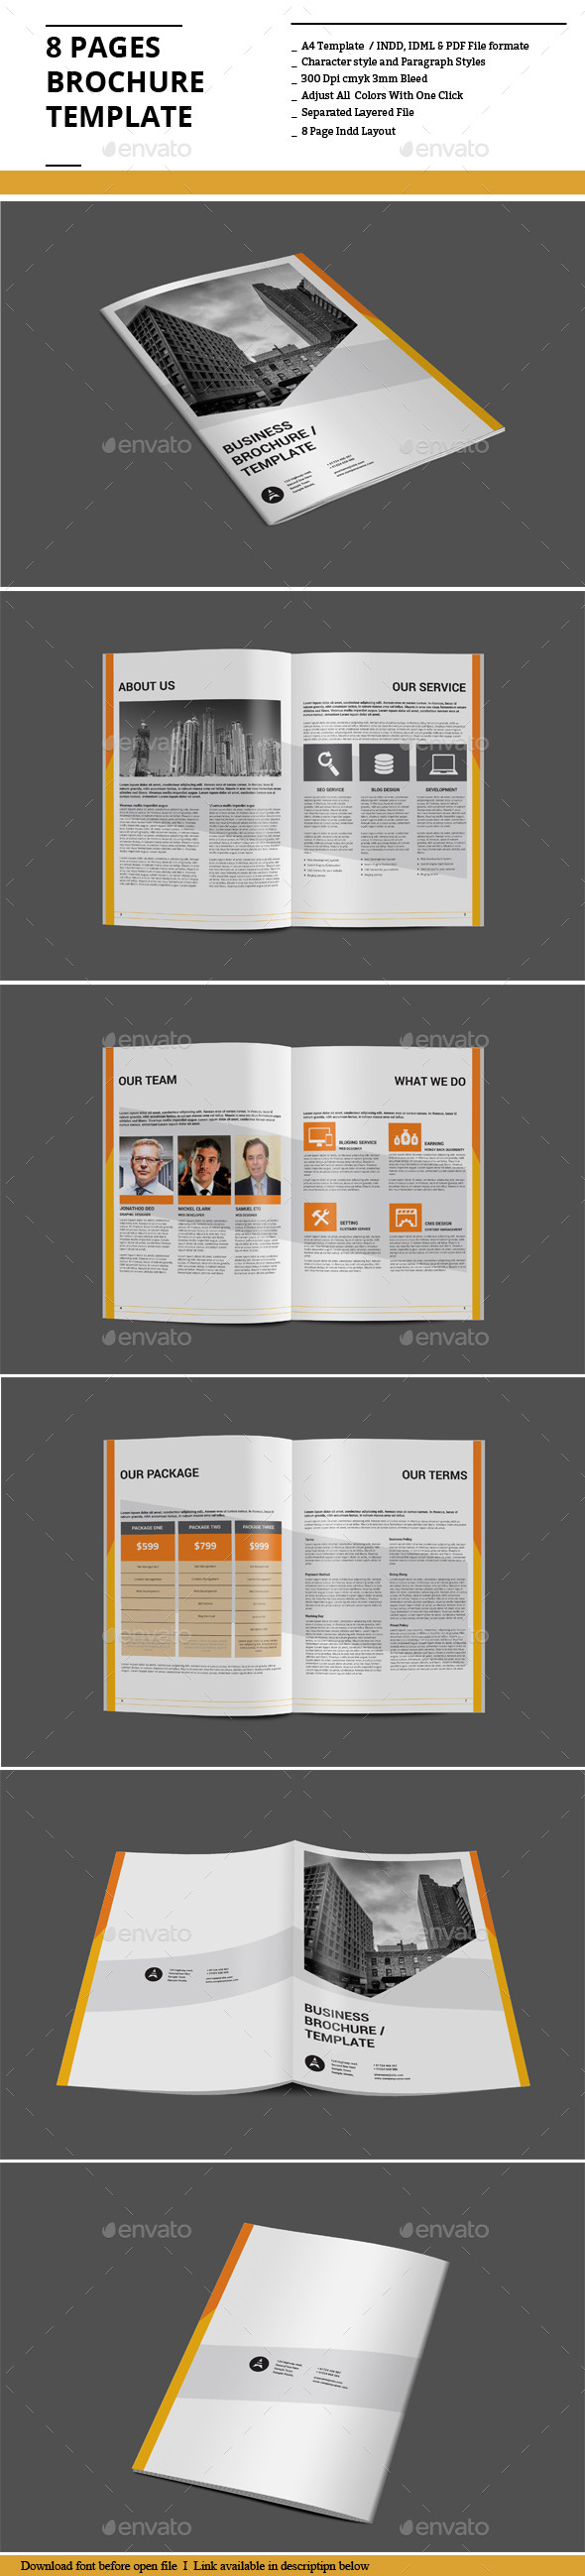 GraphicRiver 8 Pages Brochure Template 9027394